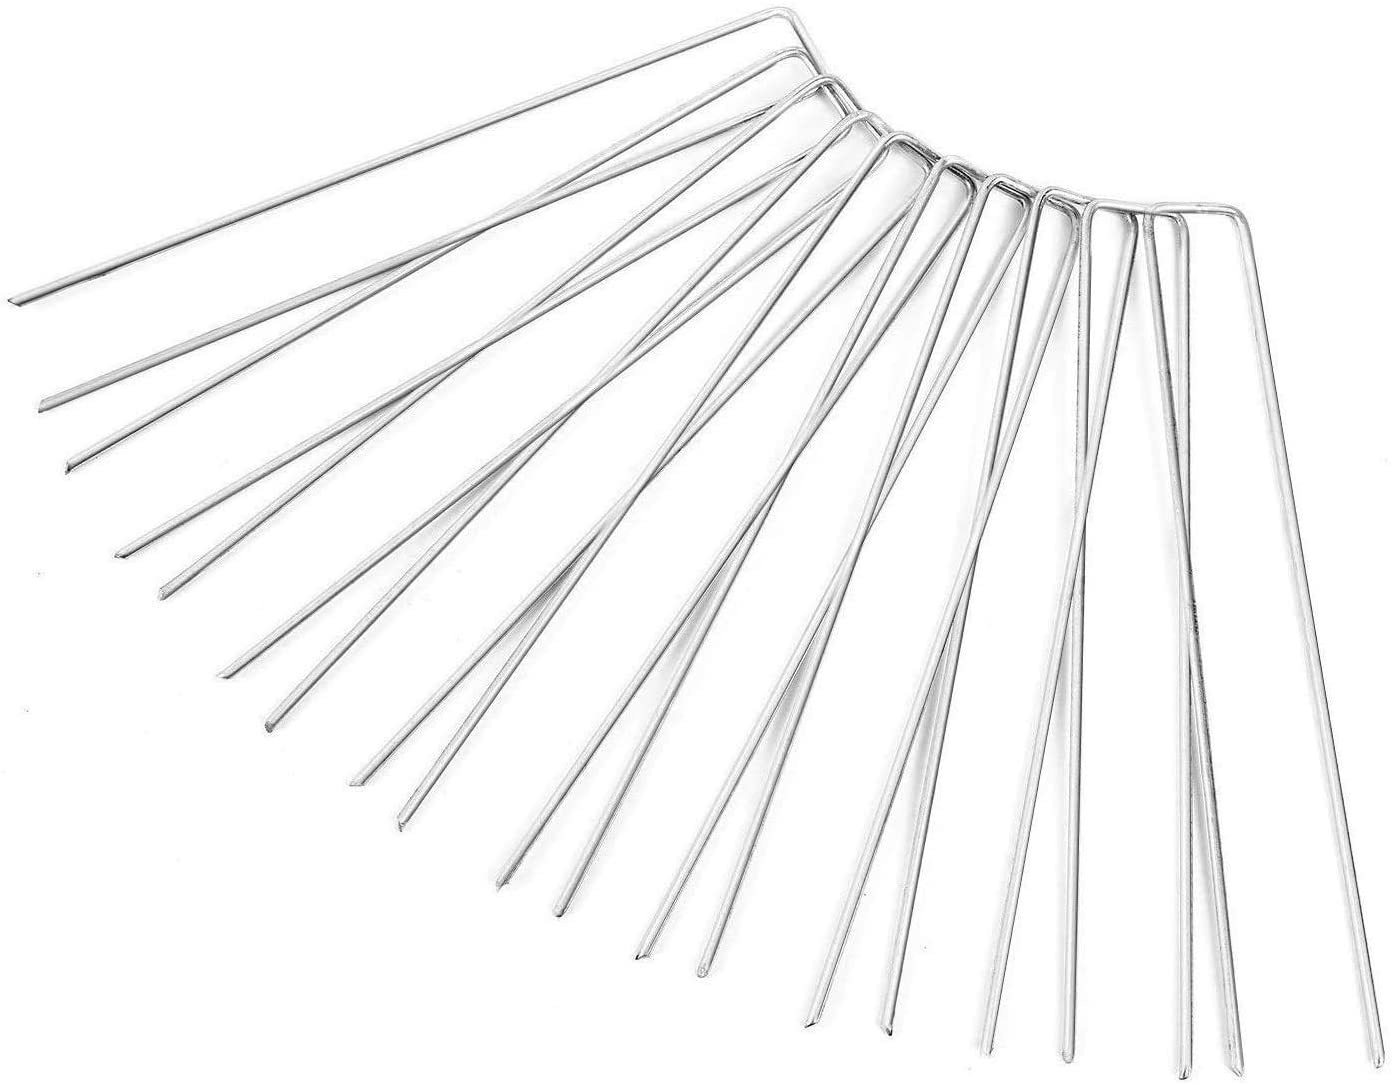 Fleece Turf ZanLLW 50Pcs 9 Gague 6 Inch Galvanized Steel Garden Staples Stakes U Type Heavy Duty Anit-Rust Pins Pegs for Securing Weed Fabric Blocker Netting Ground Sheets Landscape